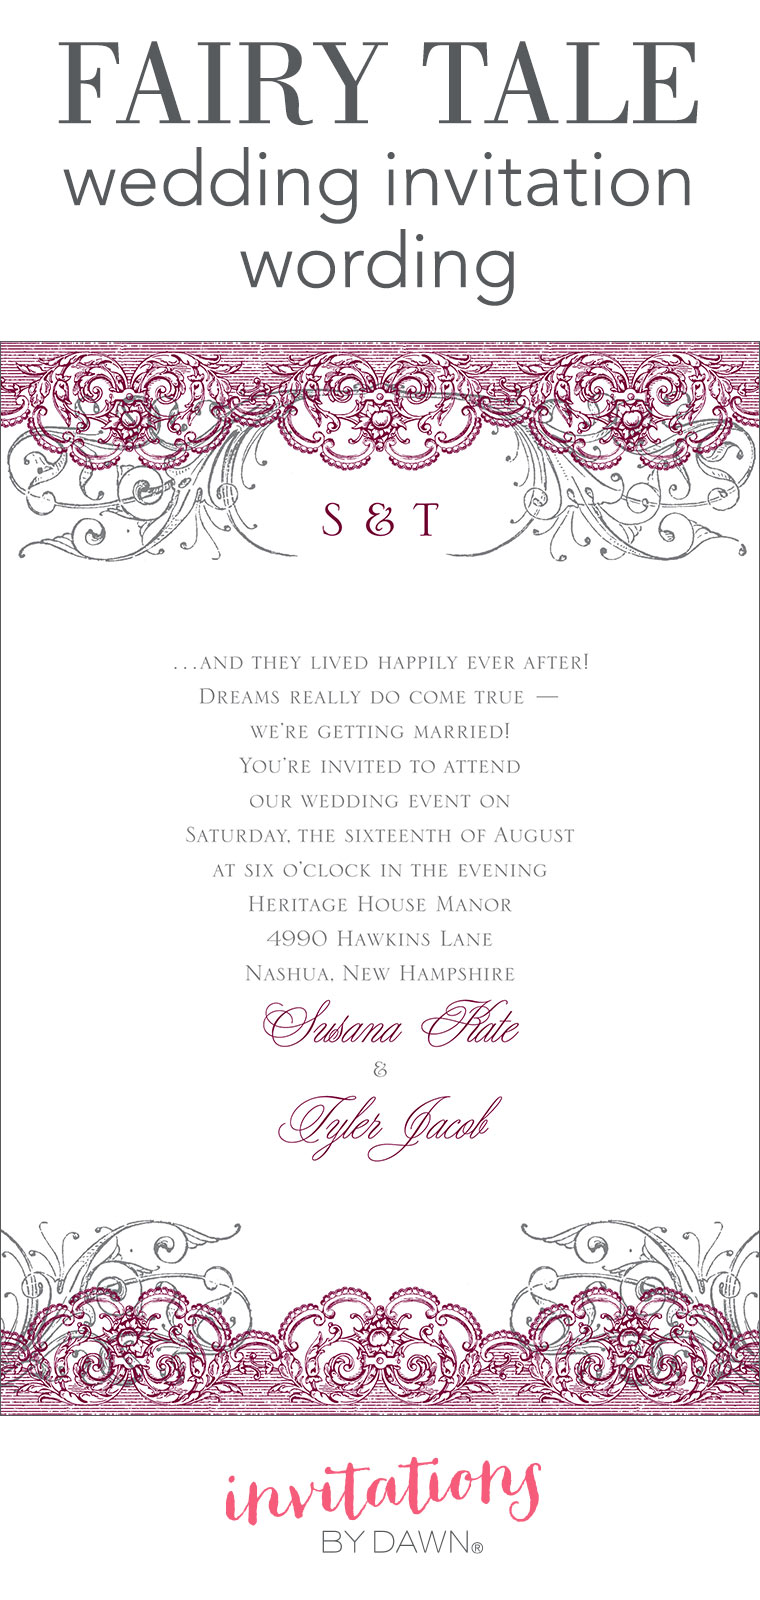 how to word a wedding invitation tale wedding invitation wording invitations by 5027